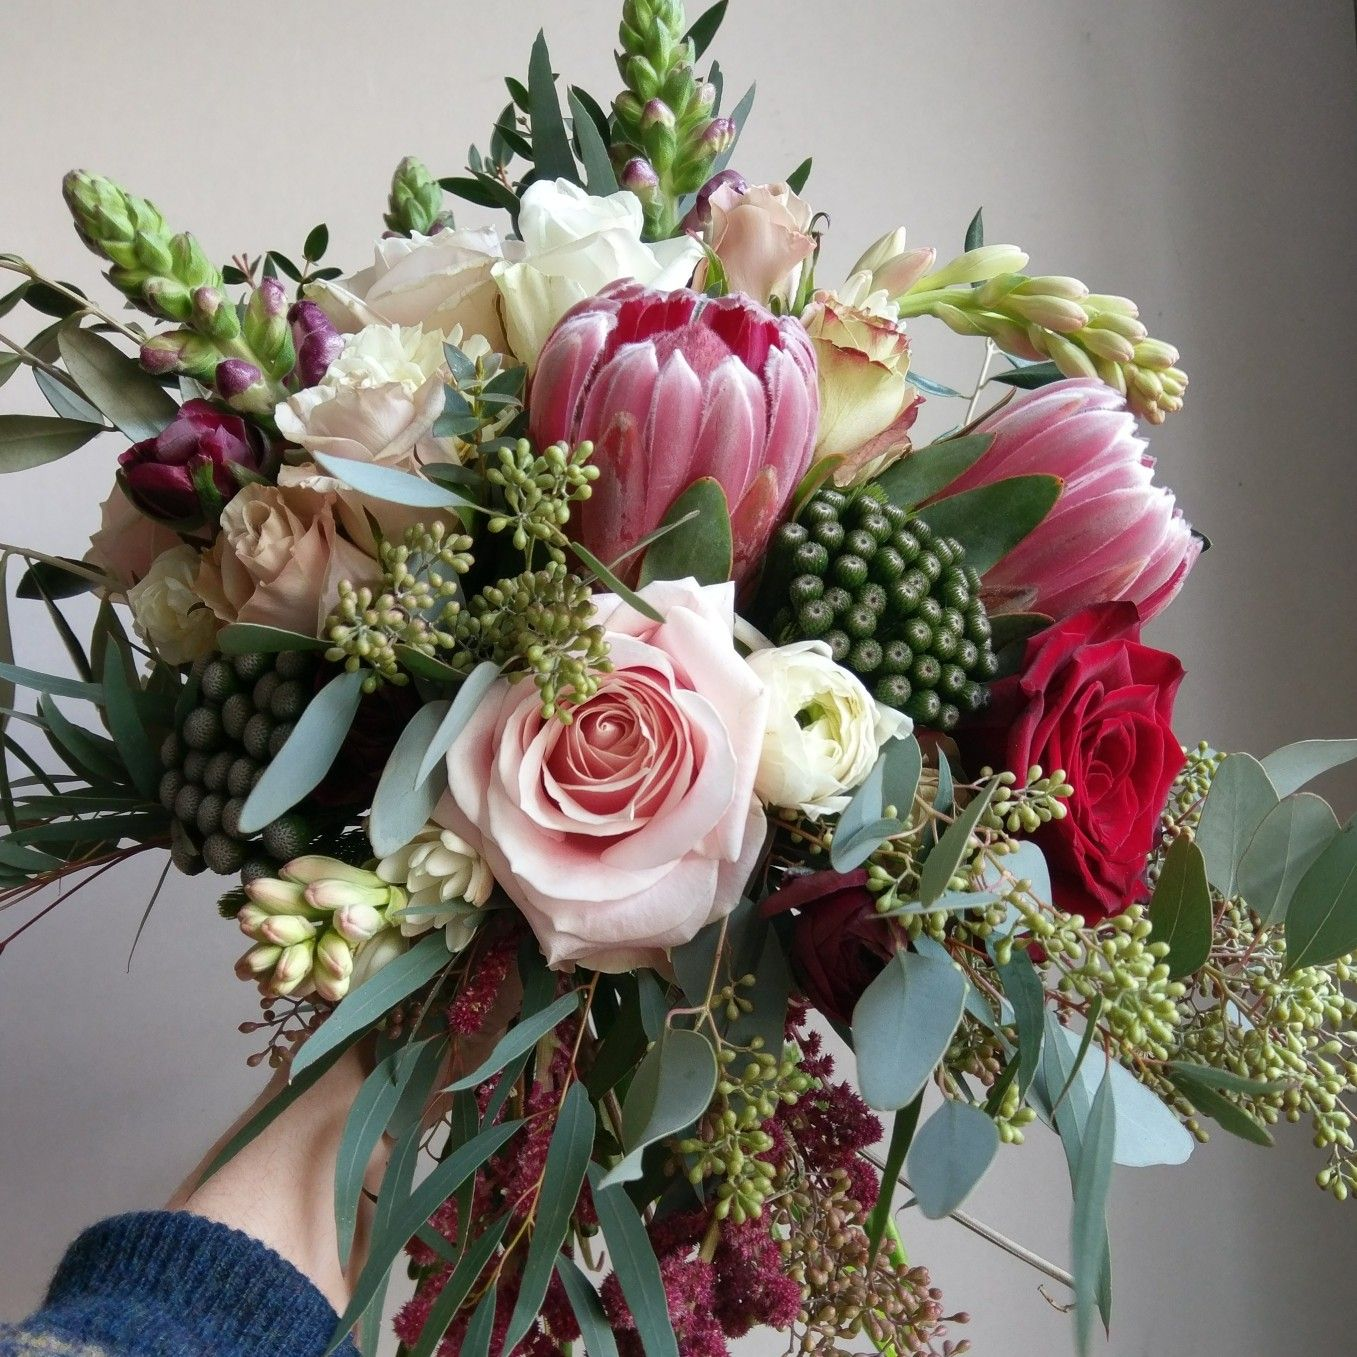 Protea And Rose Bridal Bouquet With Eucalyptus And Brunia Red And